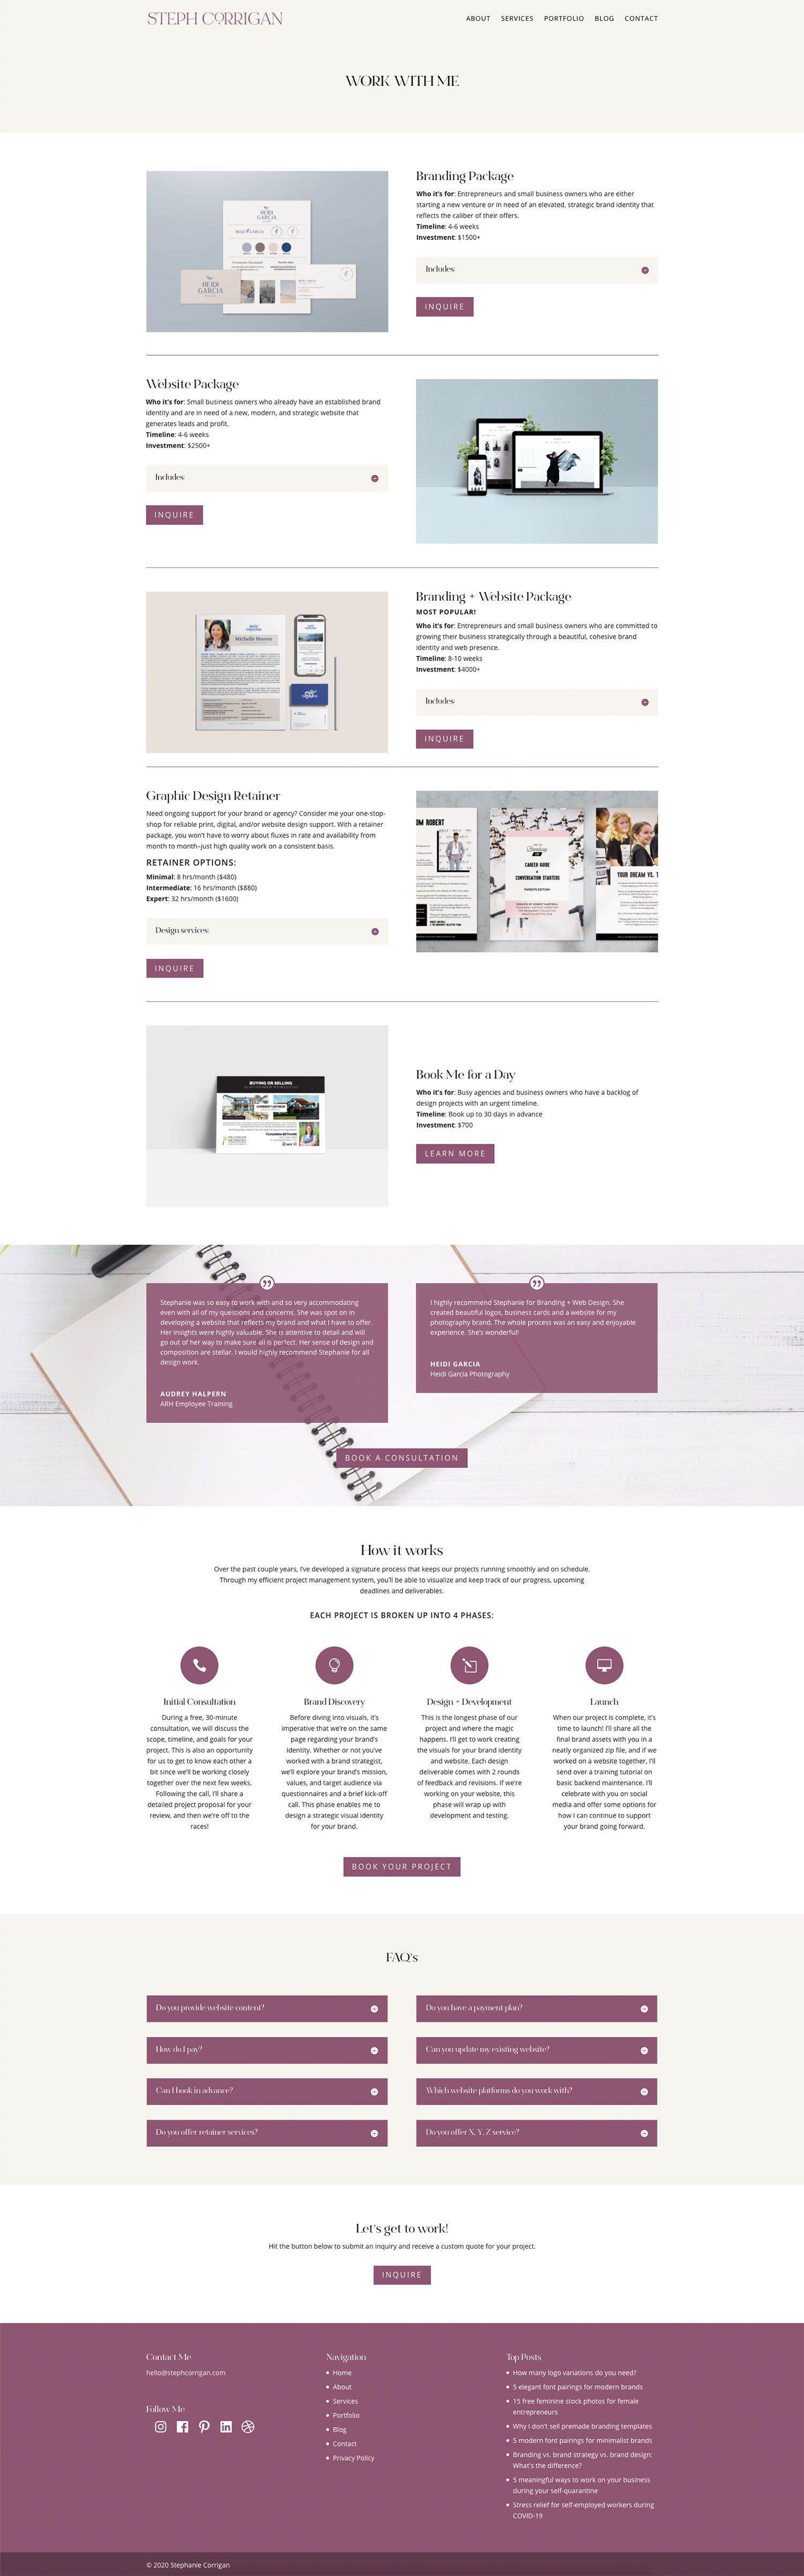 Services Page Design Inspiration In 2020 Minimalist Web Design Web Design Website Inspiration